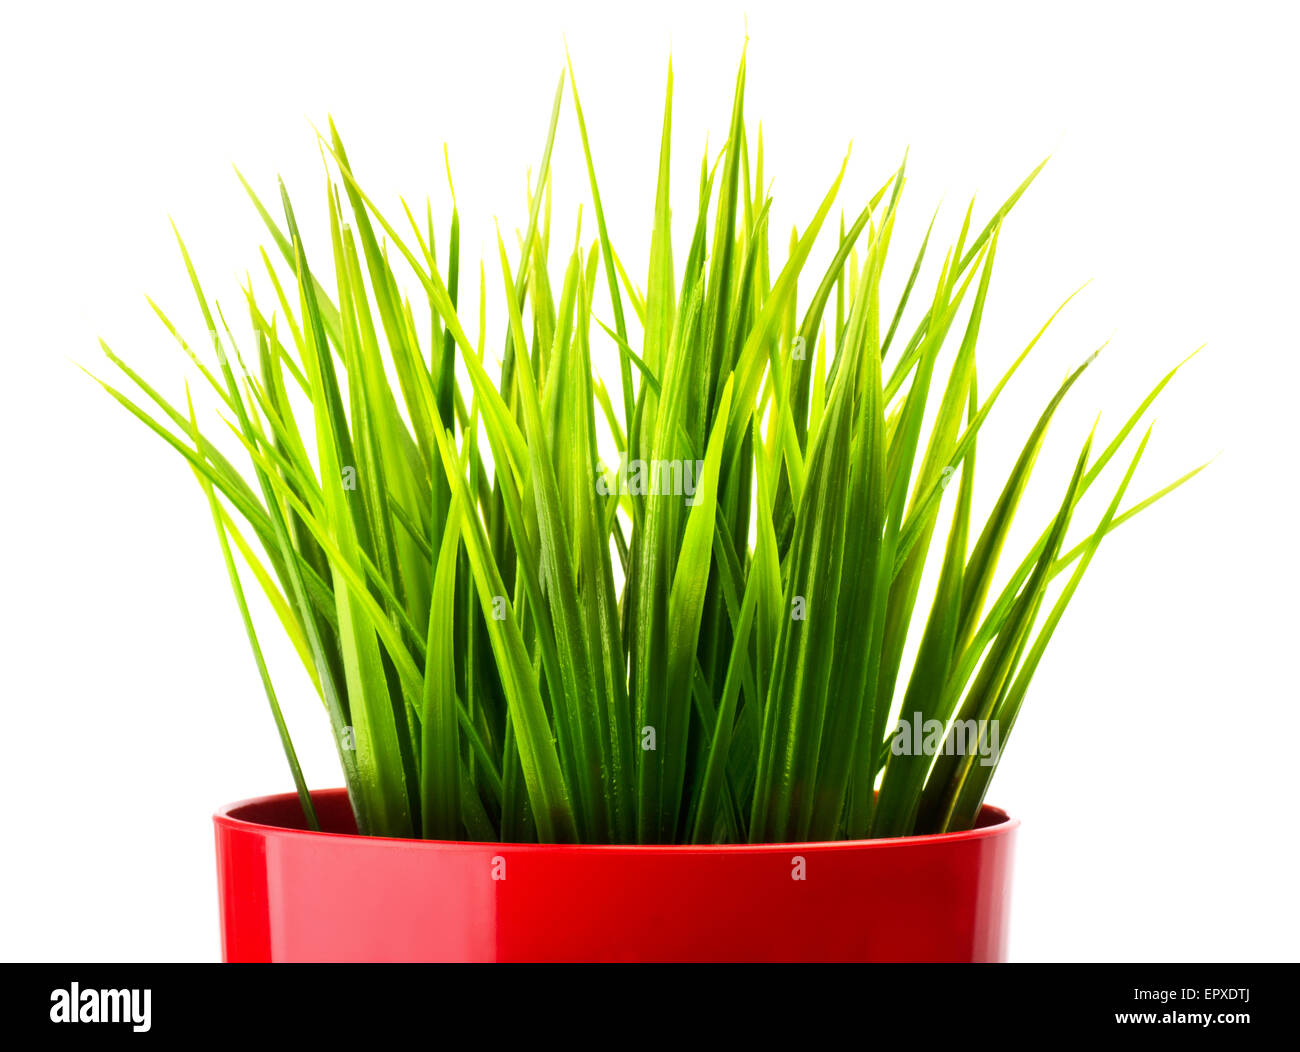 Green grass in a red pot close-up Stock Photo